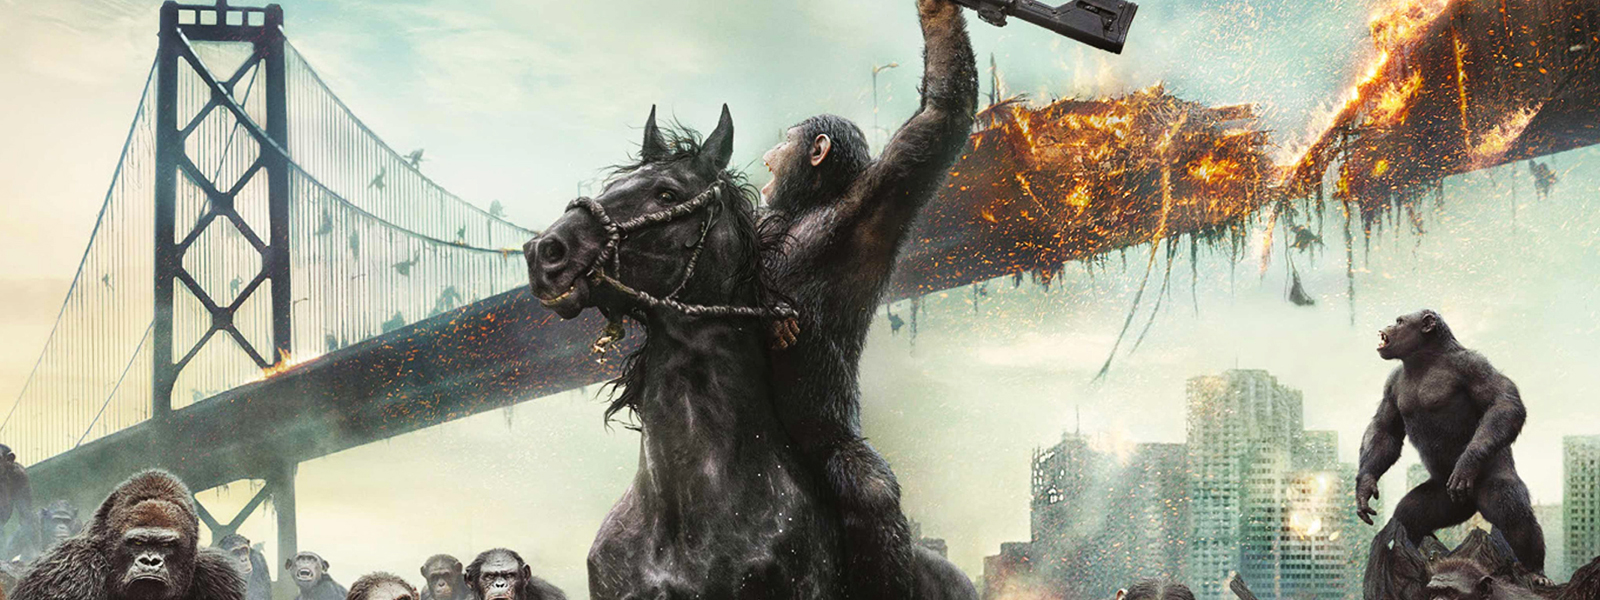 planet of the apes timeline banner art